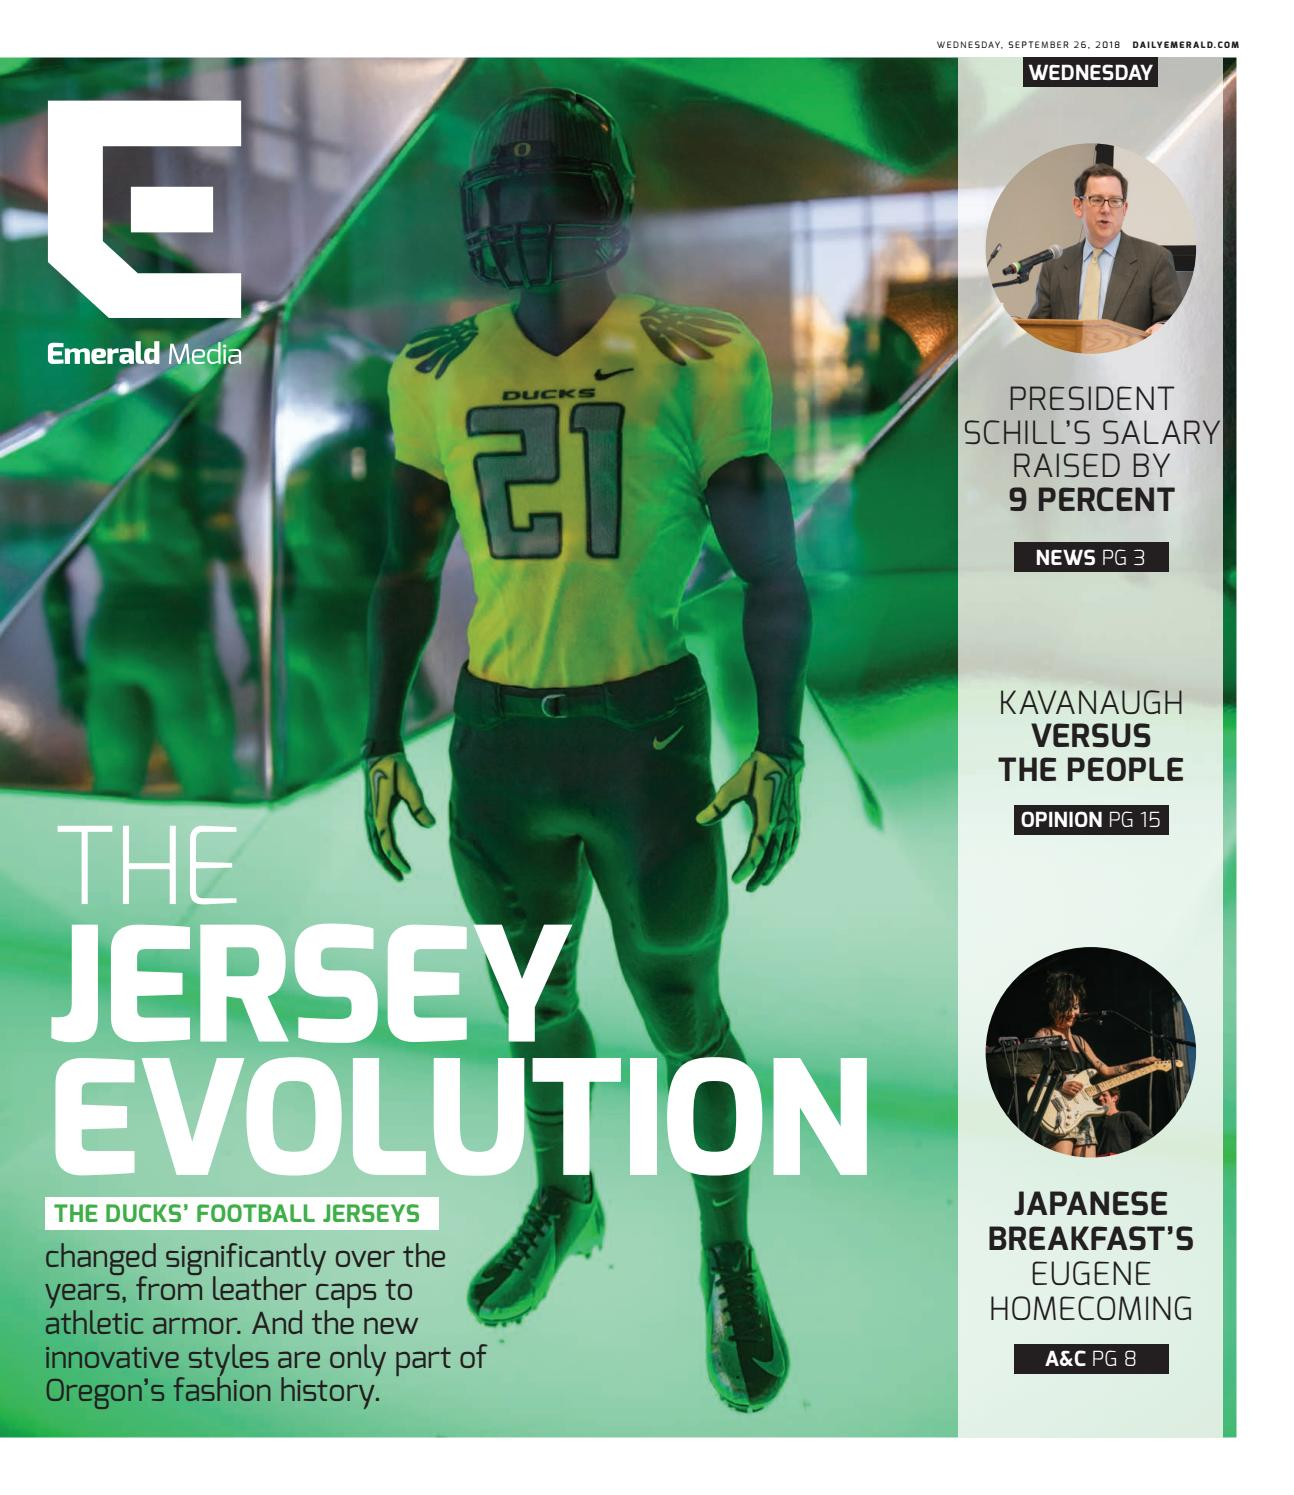 low priced 73977 c93c9 09 26 18 Emerald Media - Wednesday Edition (Week of Welcome) by Emerald  Media Group - issuu